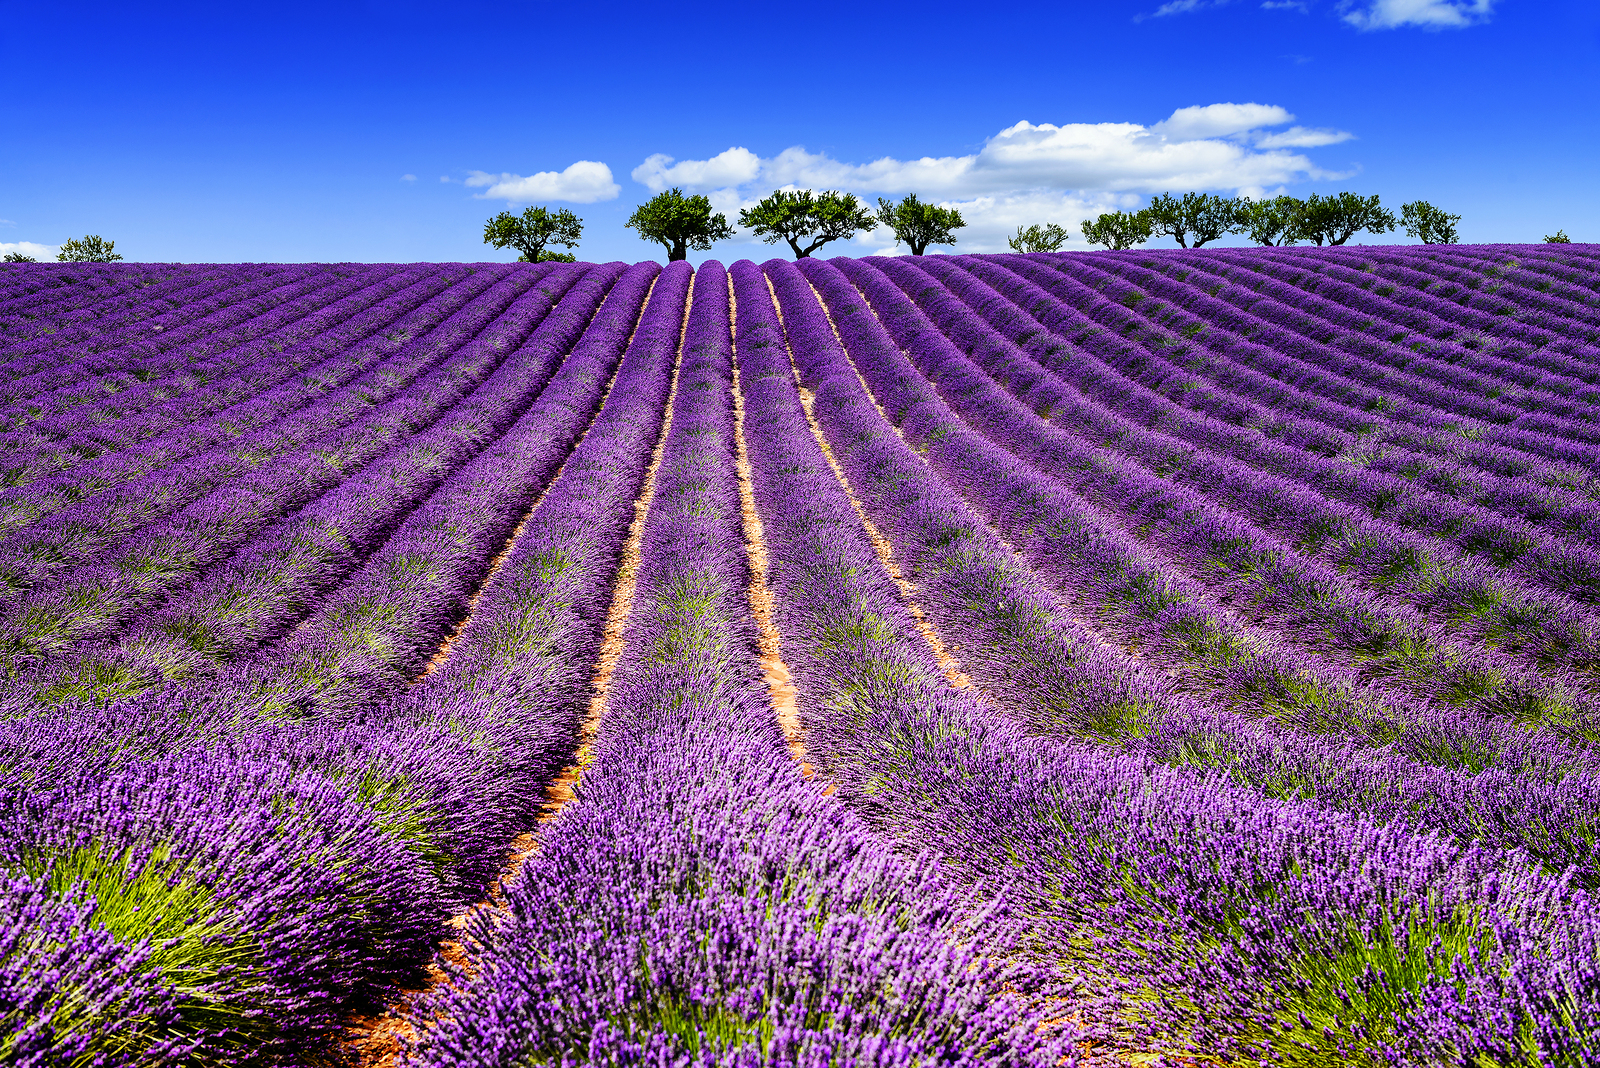 Charmant A Wonderful Celebration In Umbria To Mark The Seasonal Blossoming Of  Fragrant Lavender On The Fields Of Lavandeto Di Assisi, A Garden And  Breeding Ground ...